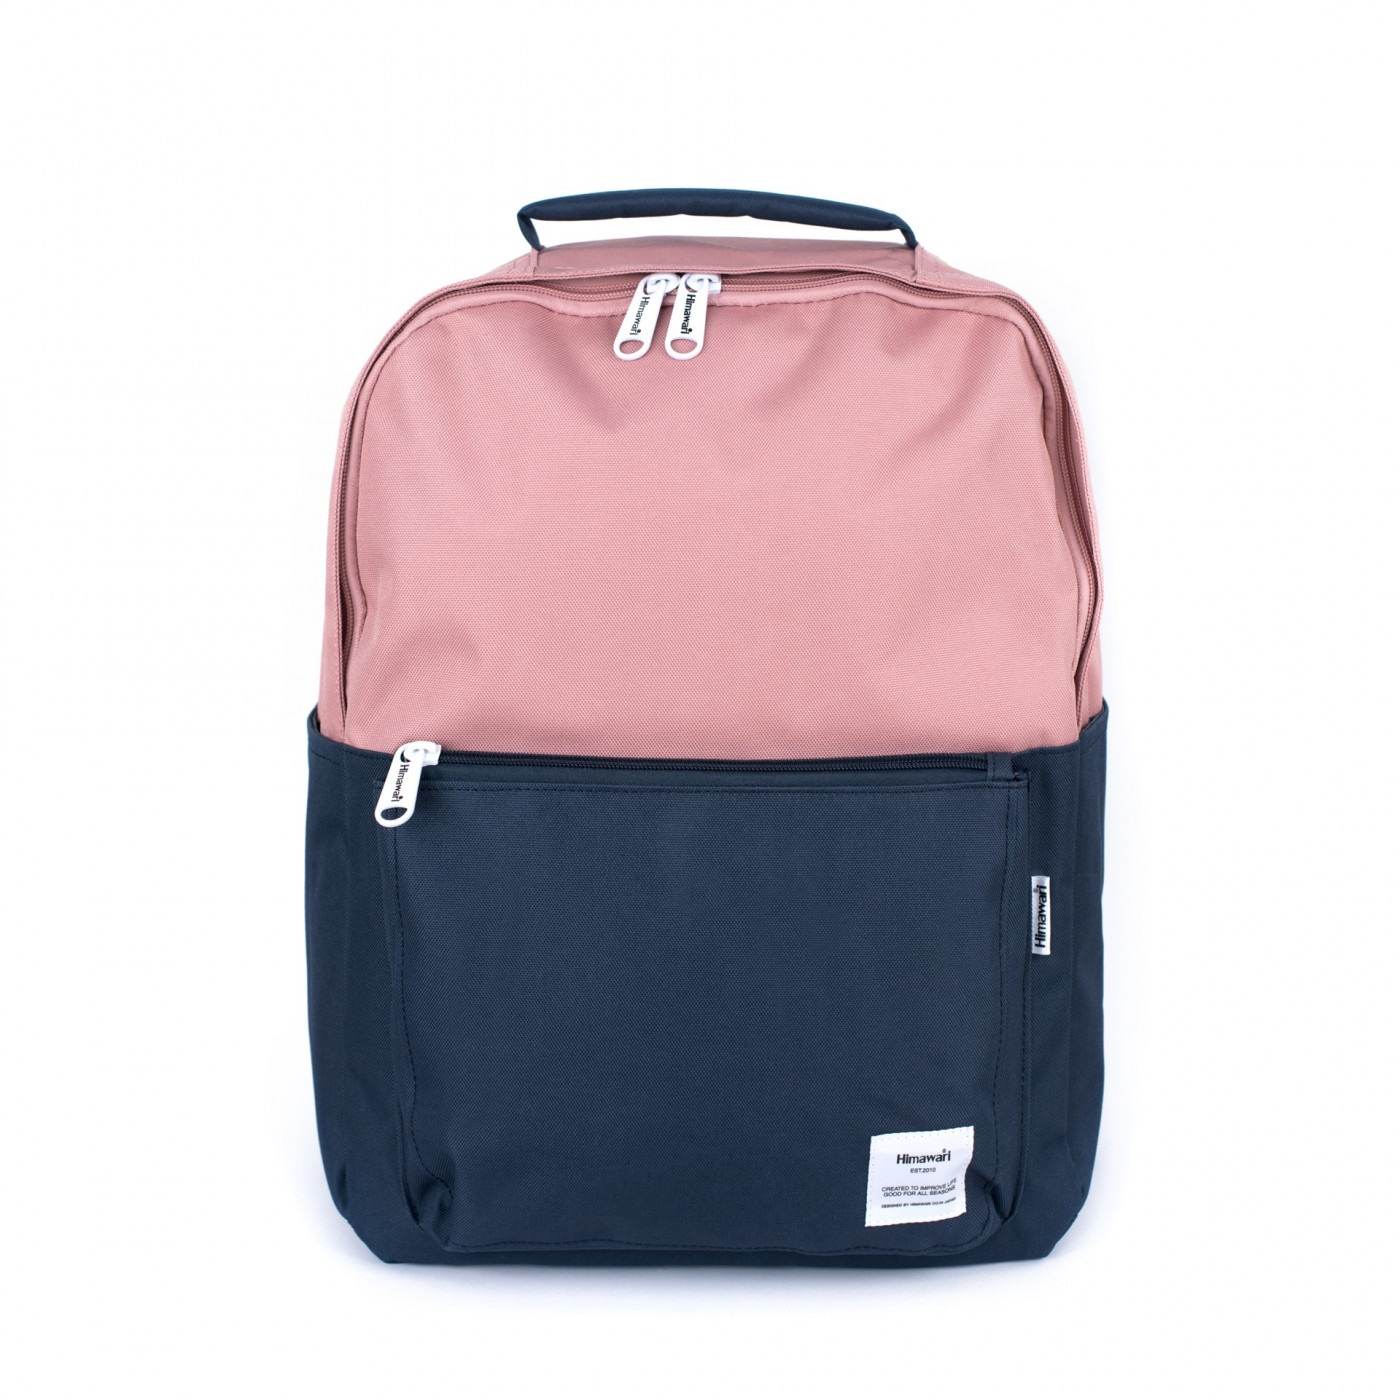 Art Of Polo Unisex's Backpack tr19427 Navy Blue/Pink